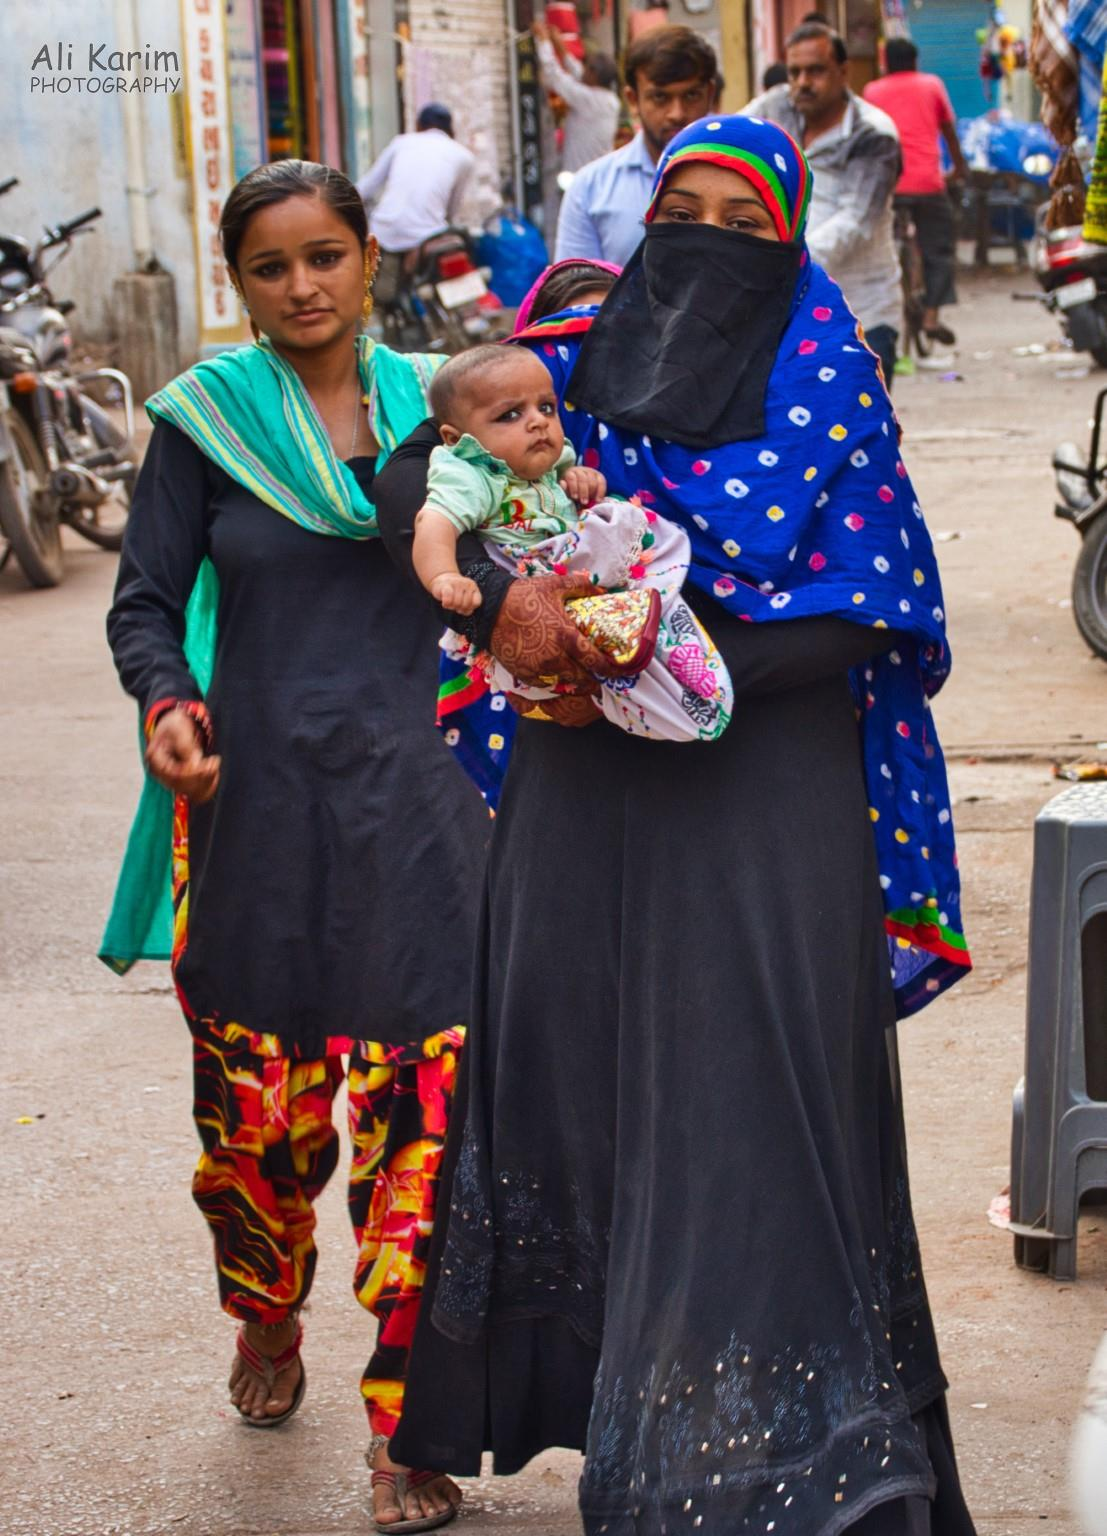 More Bhuj Baby and mother; note the henna on the mothers hand